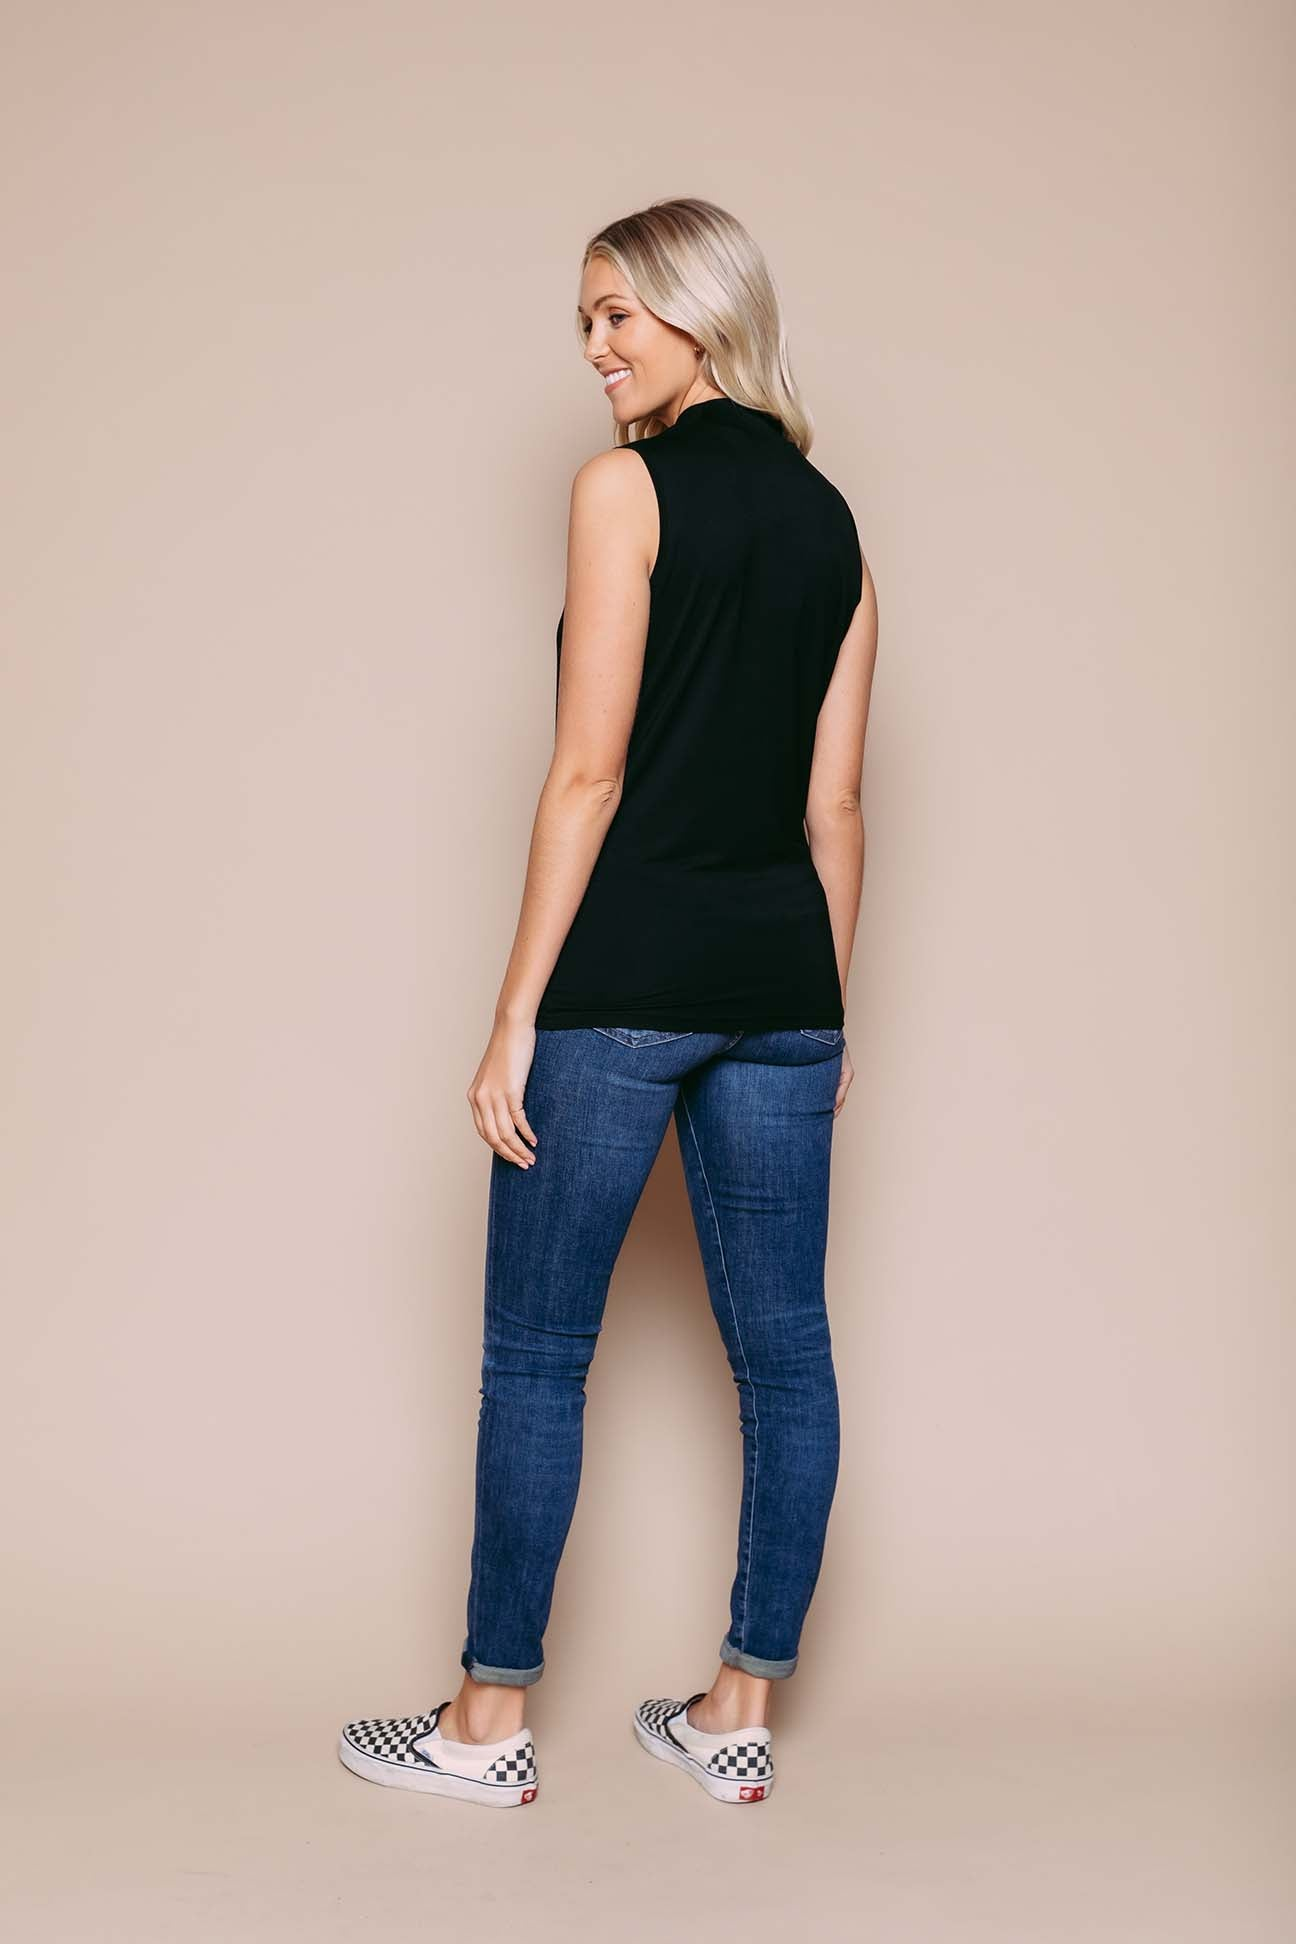 Jody - Mock Neck Tank Black